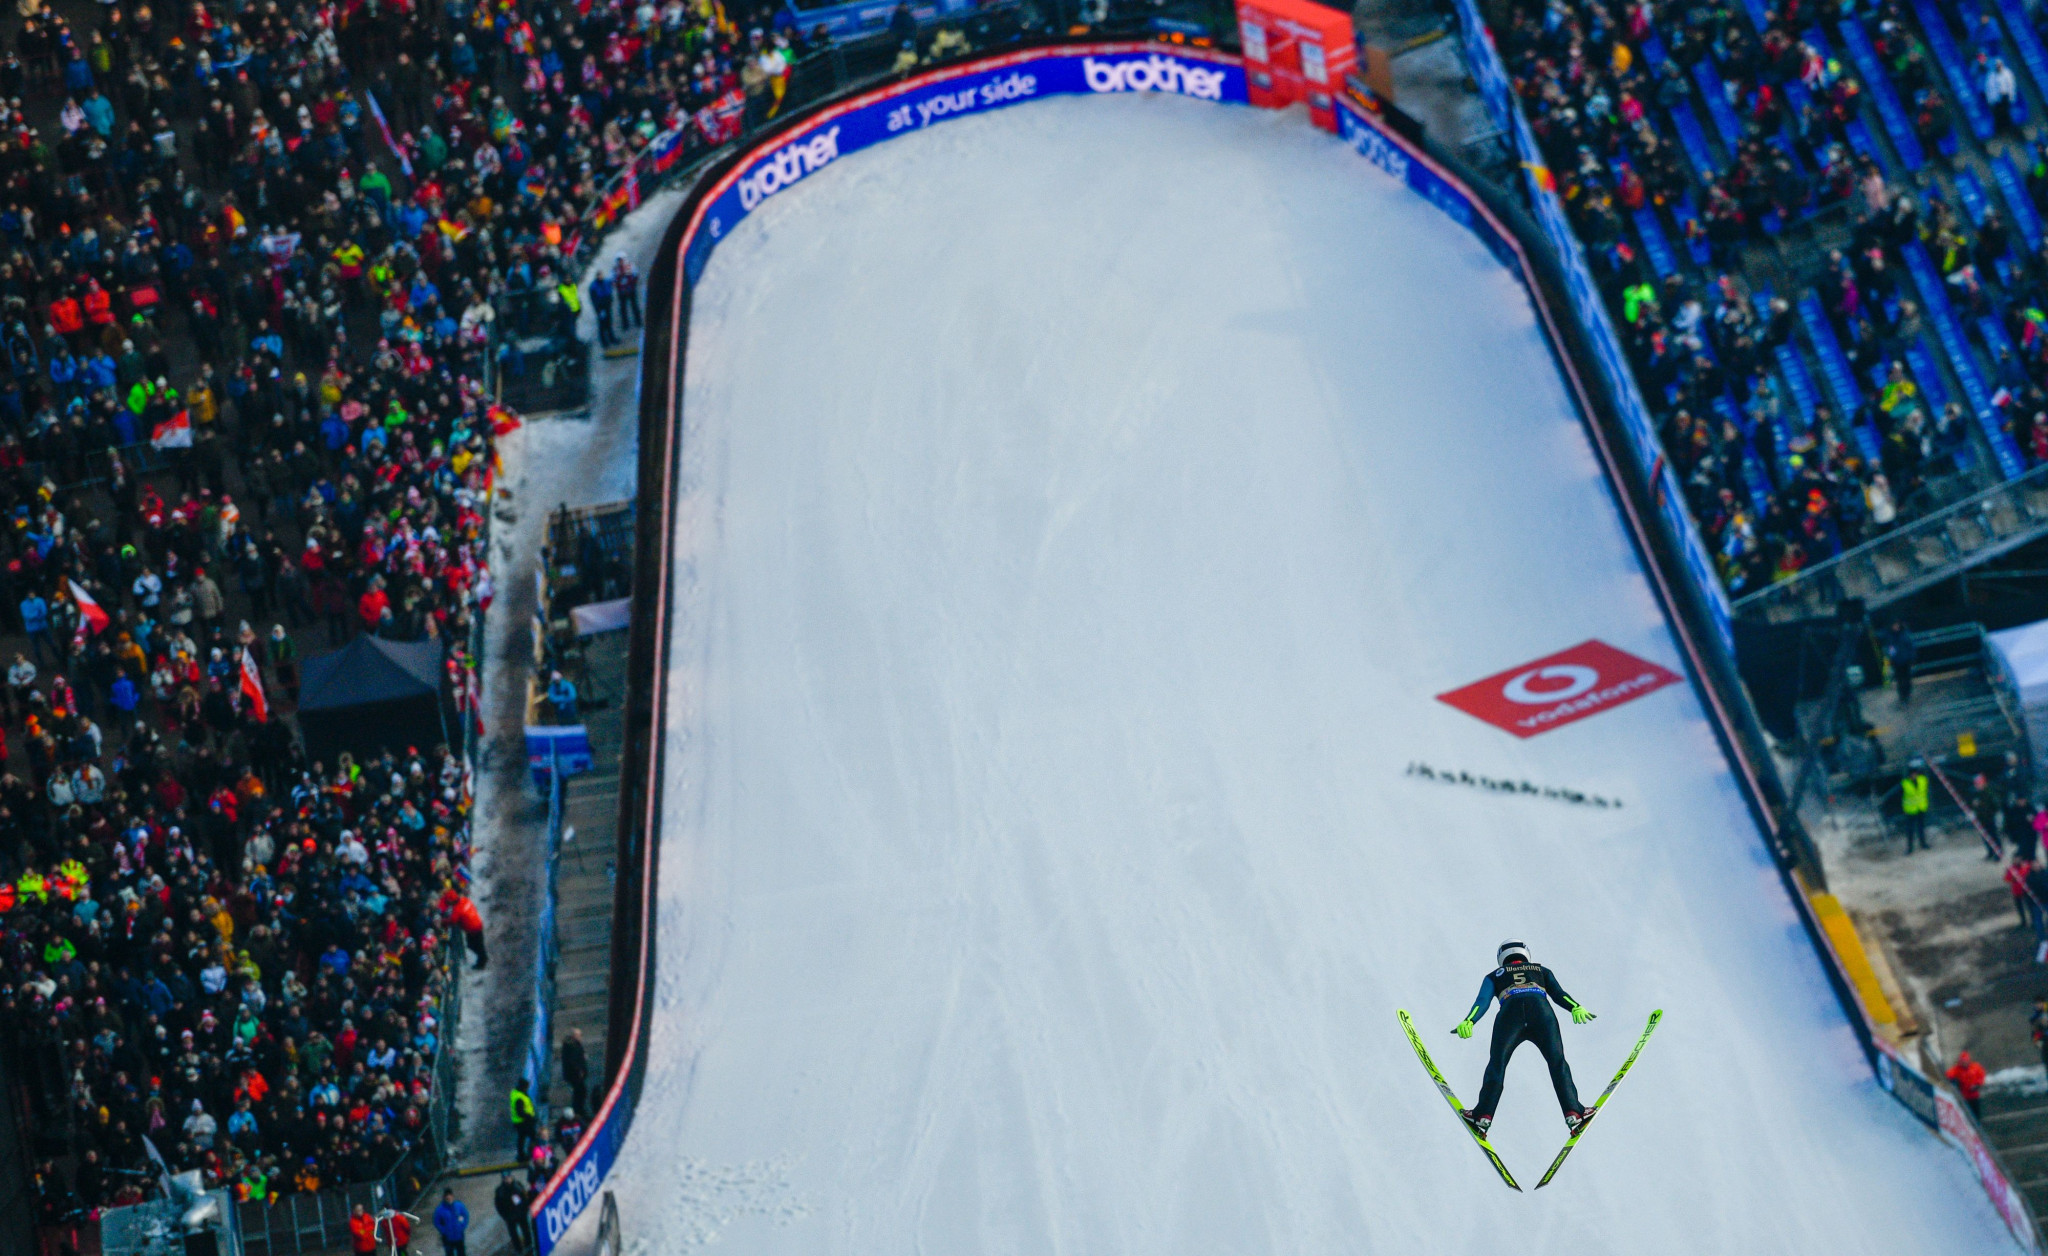 Strong winds delay FIS Ski Jumping World Cup in Willingen